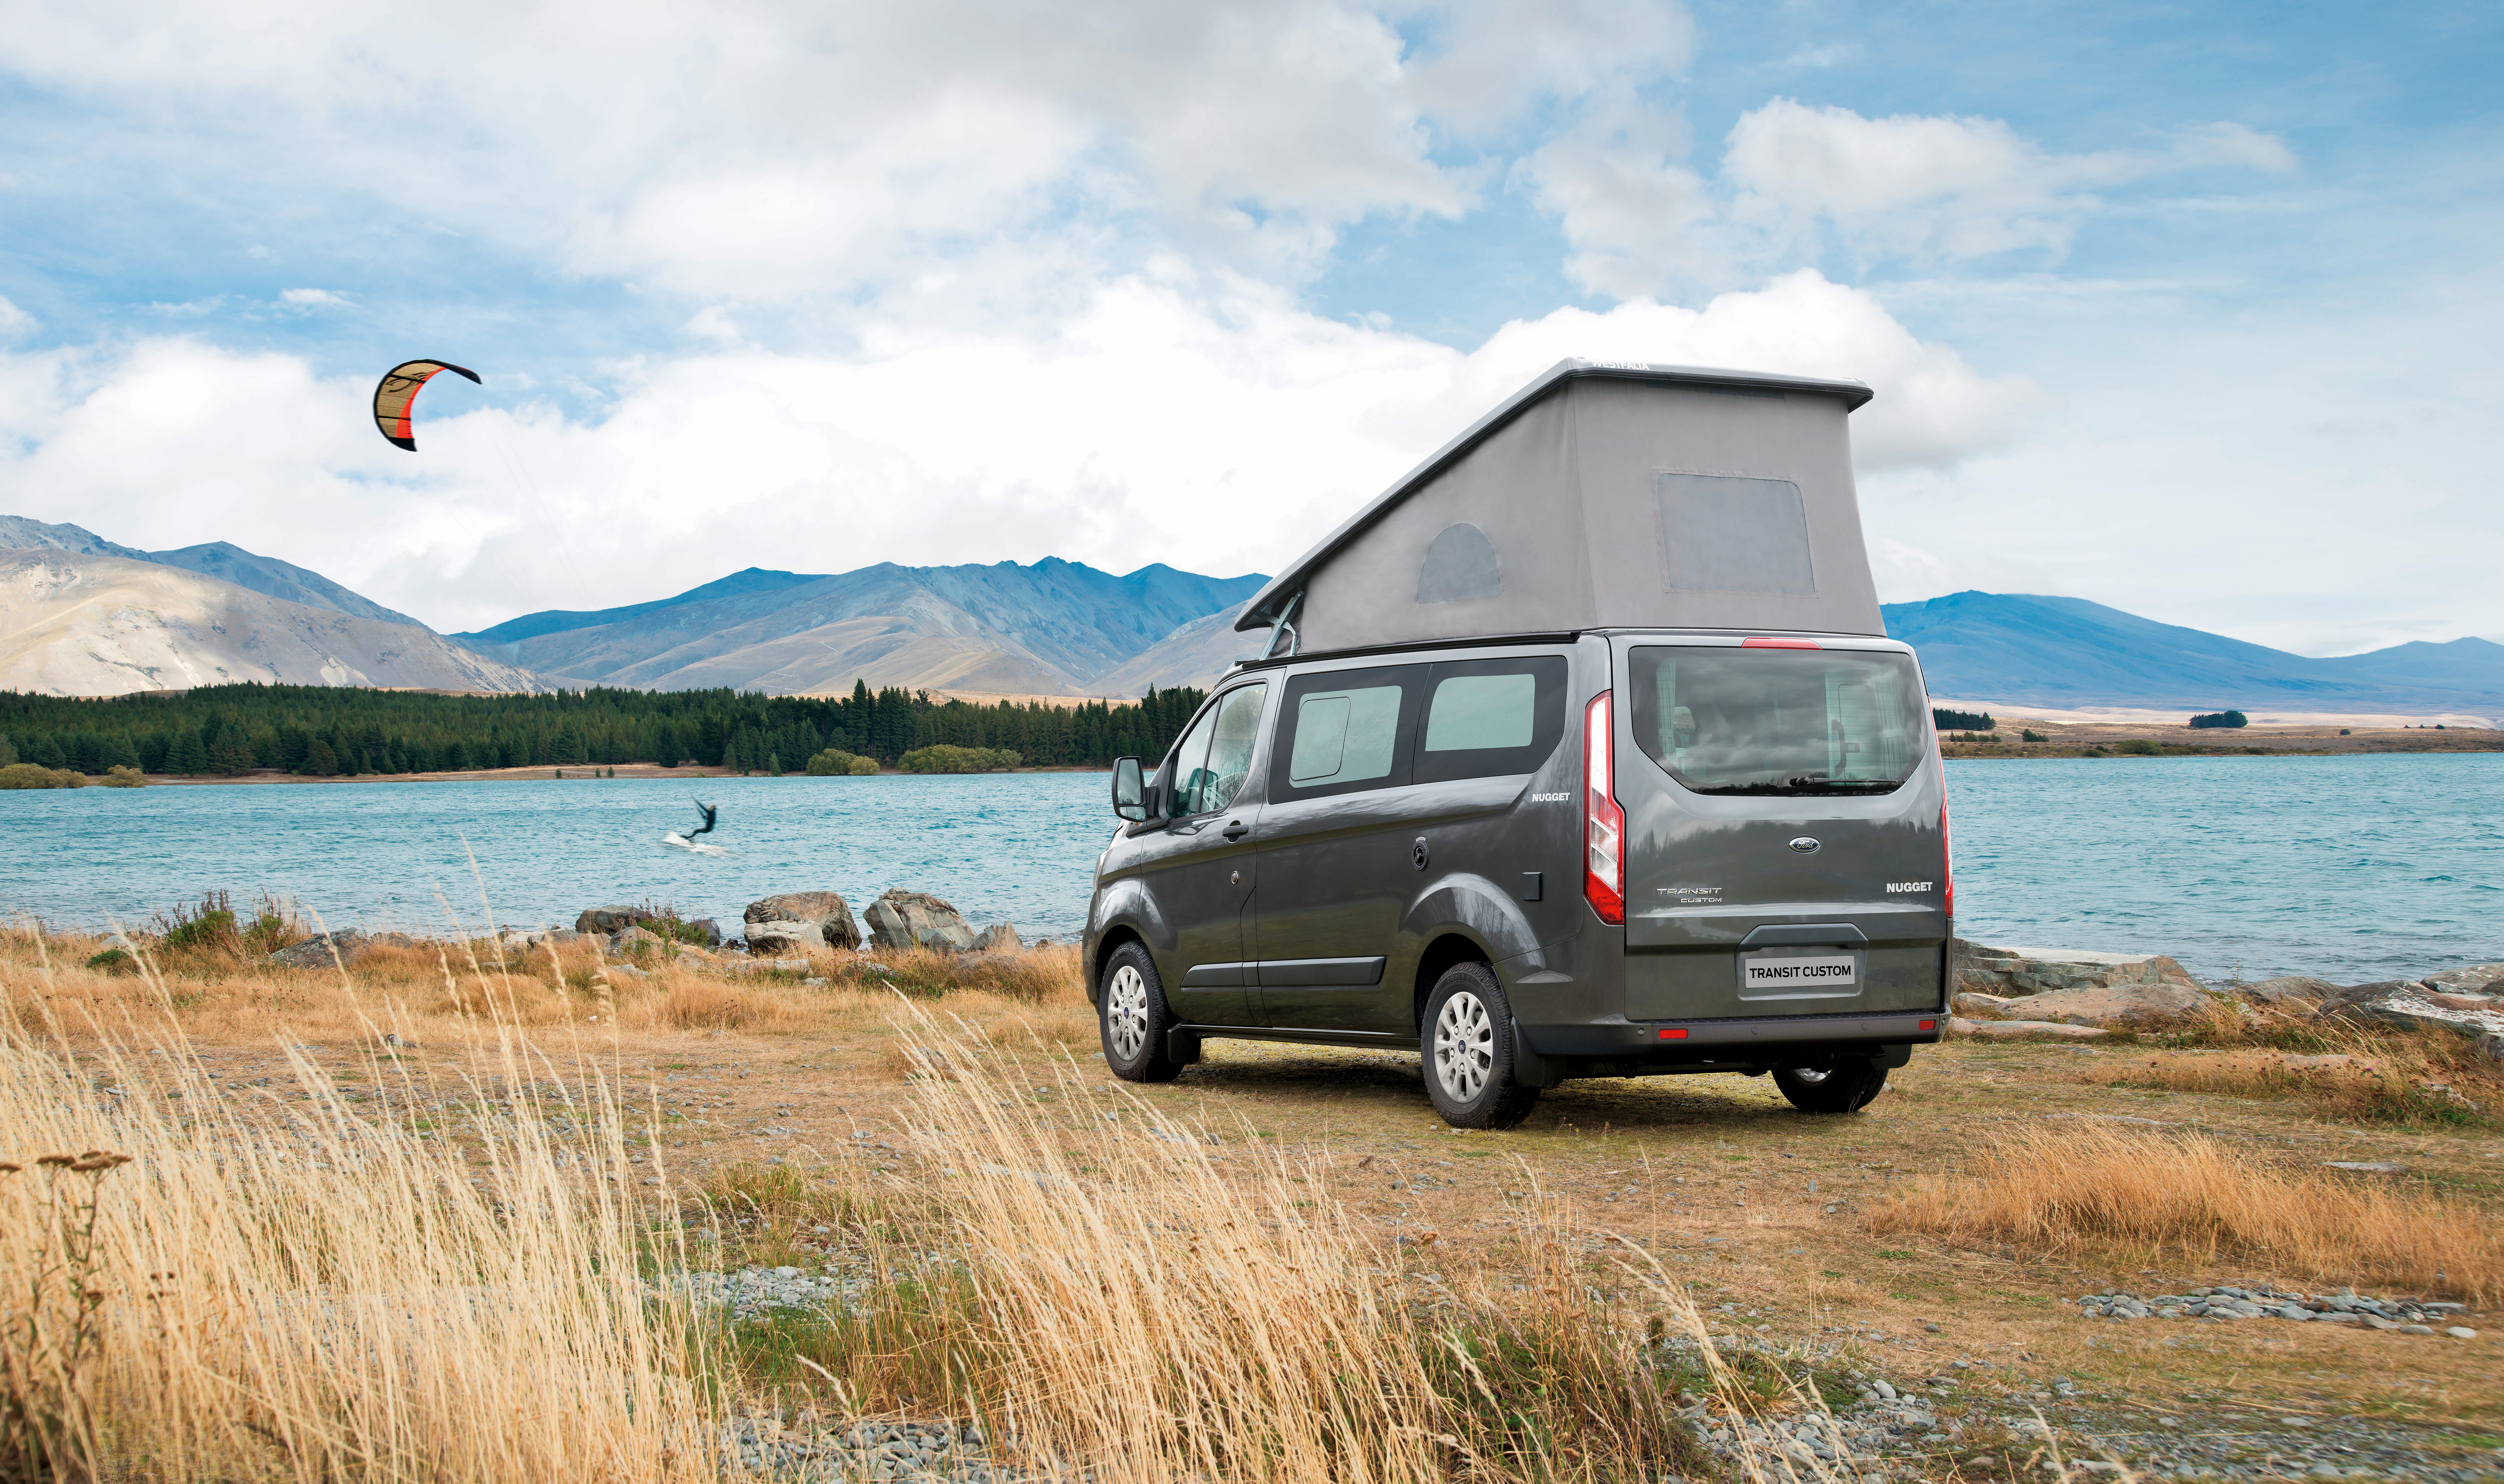 A gray pop-top camper van with its roof popped sits in a field next to a mountainous lake. There is a kite boarder on the lake.